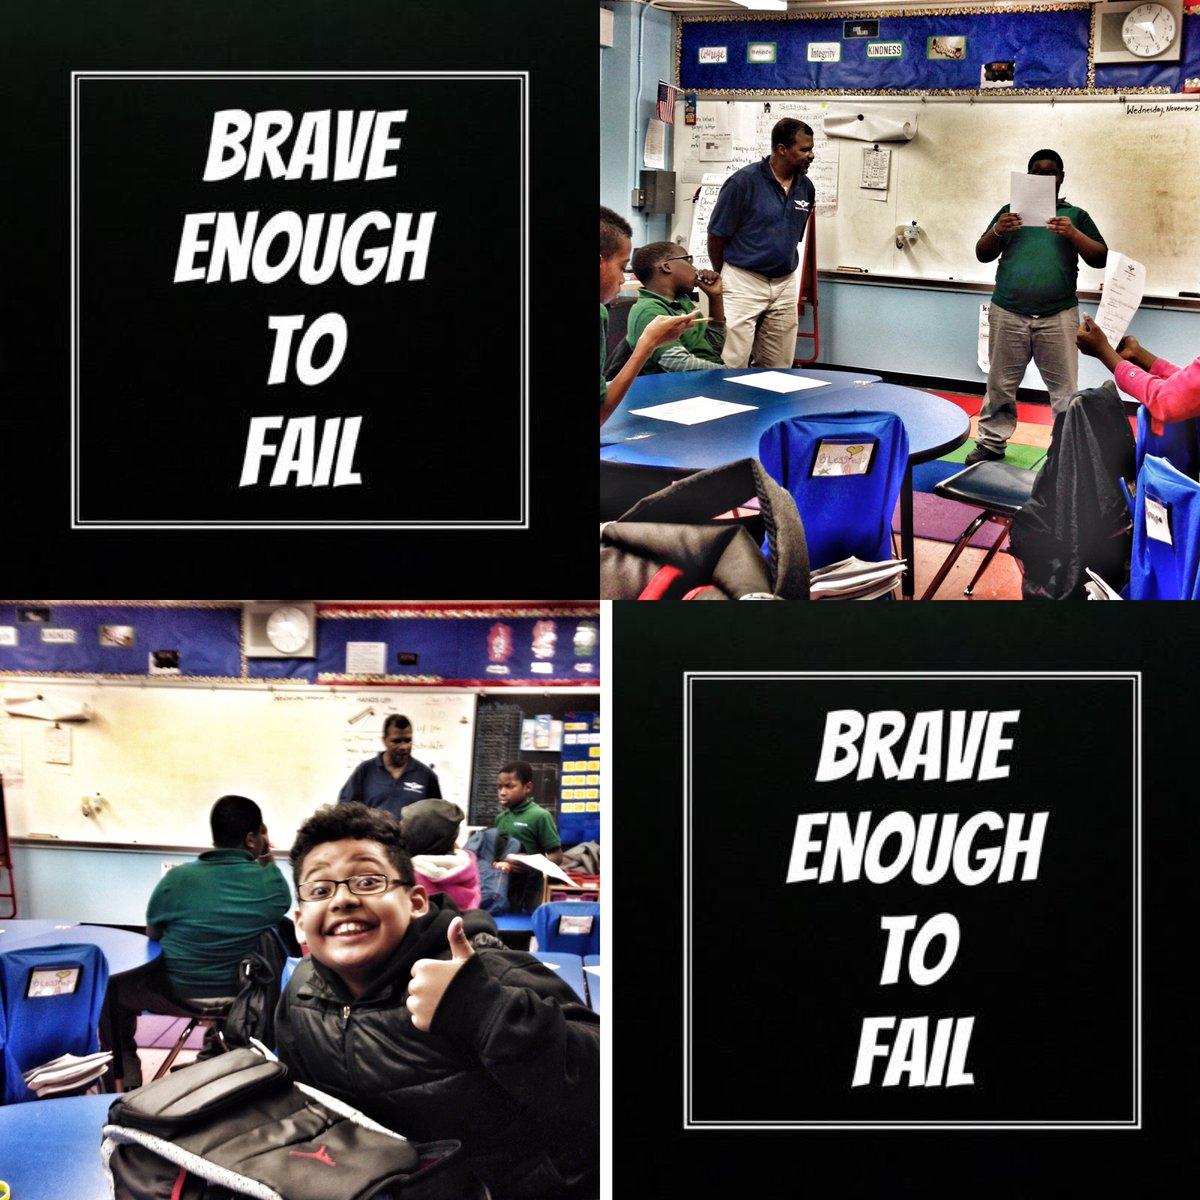 Inspire kids to reach their dreams. Give now! #Nonprofit #Charity  http://www. braveenoughtofail.org / &nbsp;  <br>http://pic.twitter.com/8o8OViQVKL